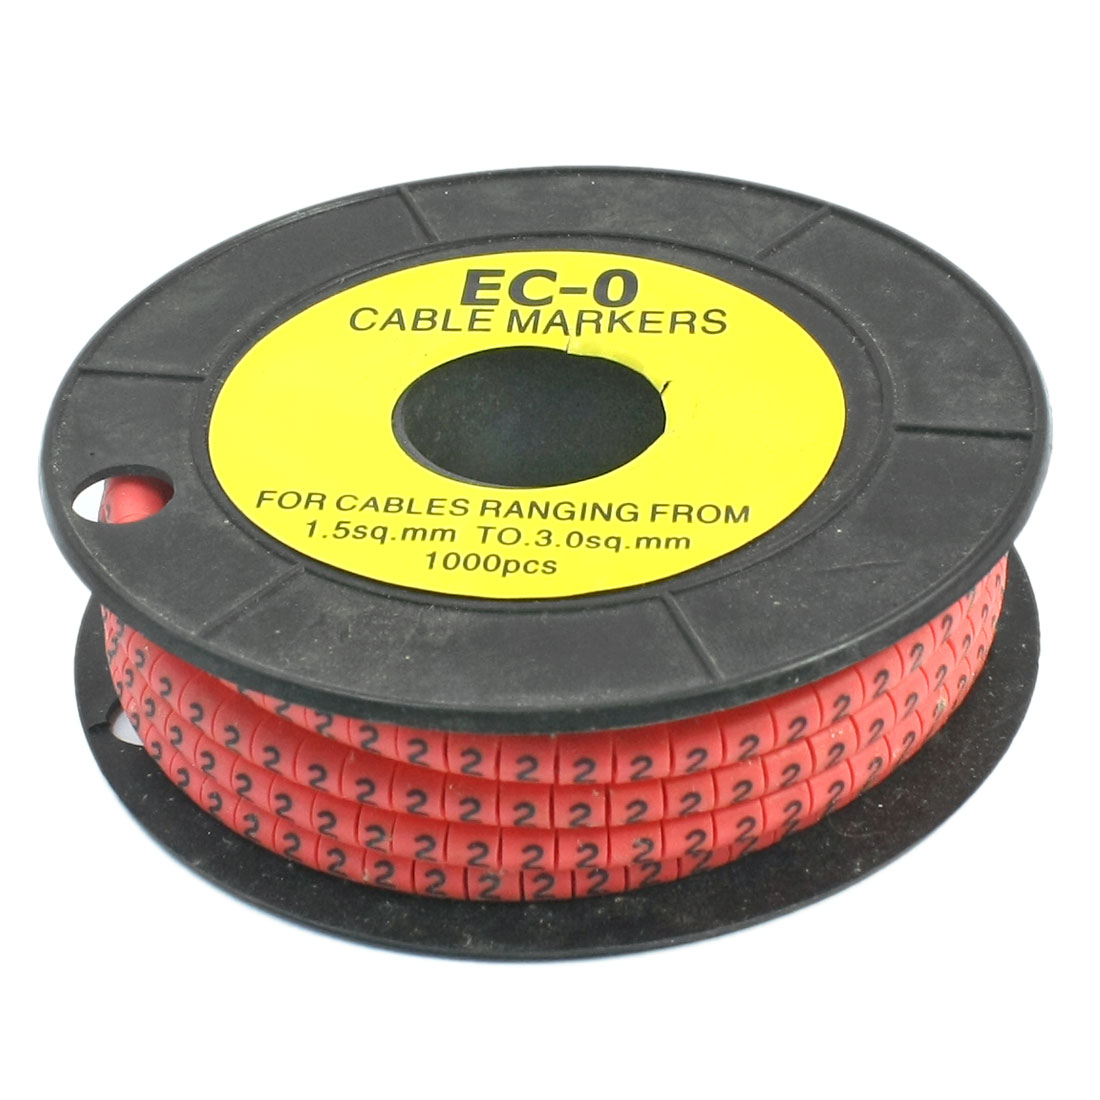 1000Pcs Red Self Locking PVC Number 2 1.5-3sq.mm Cable Markers